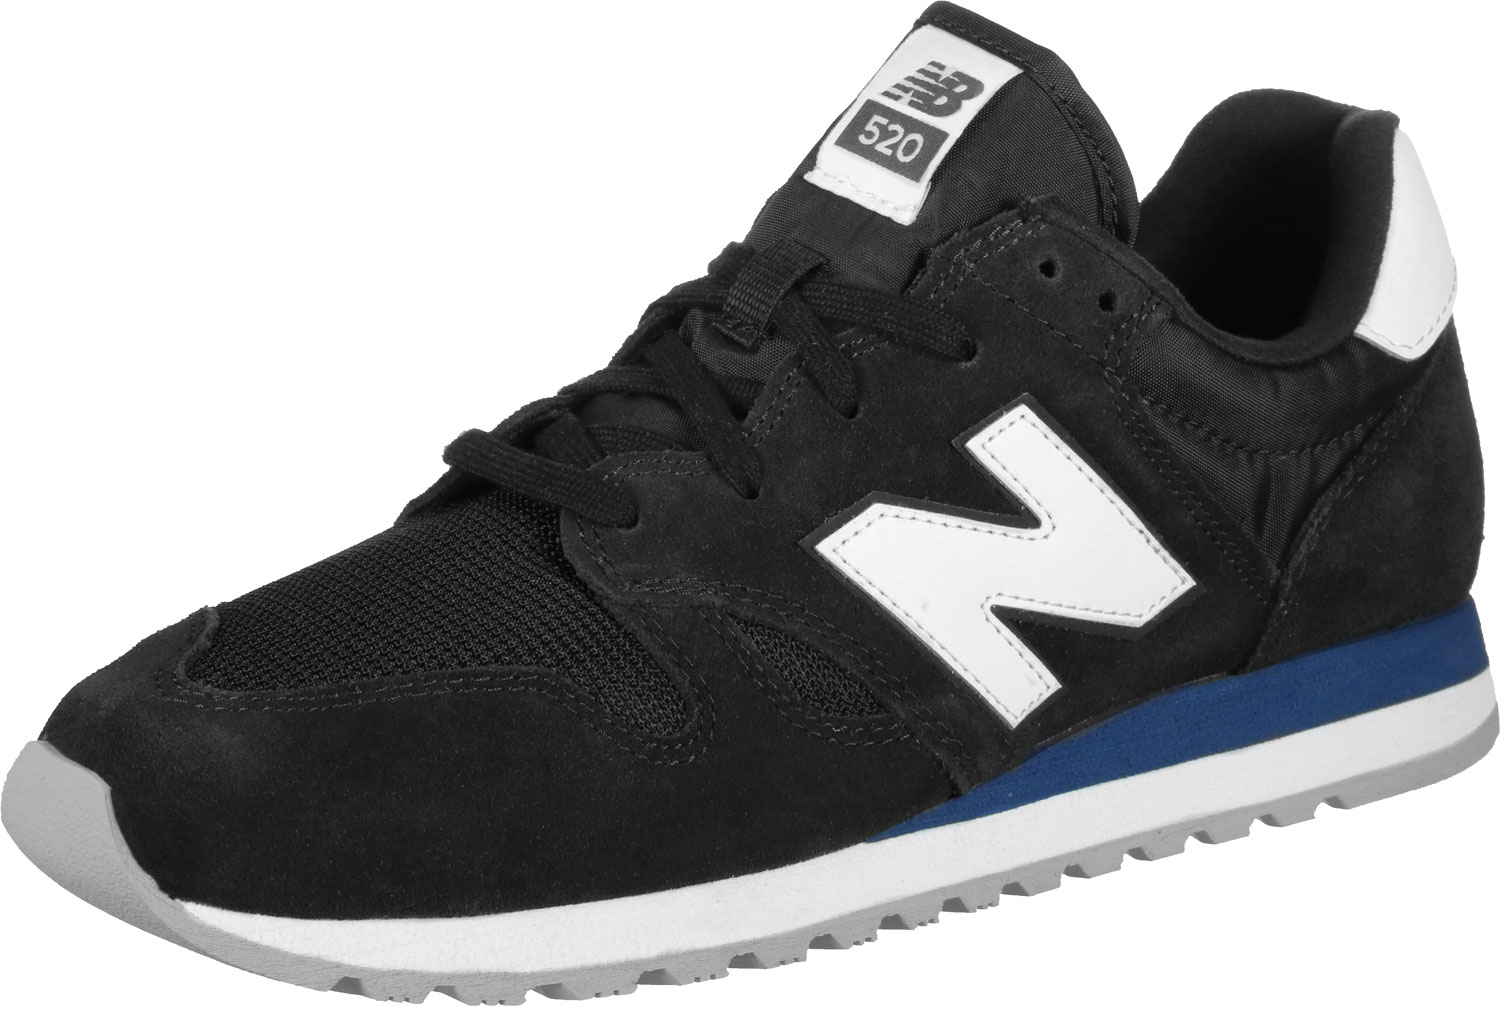 New Balance U520 - Sneakers Low at